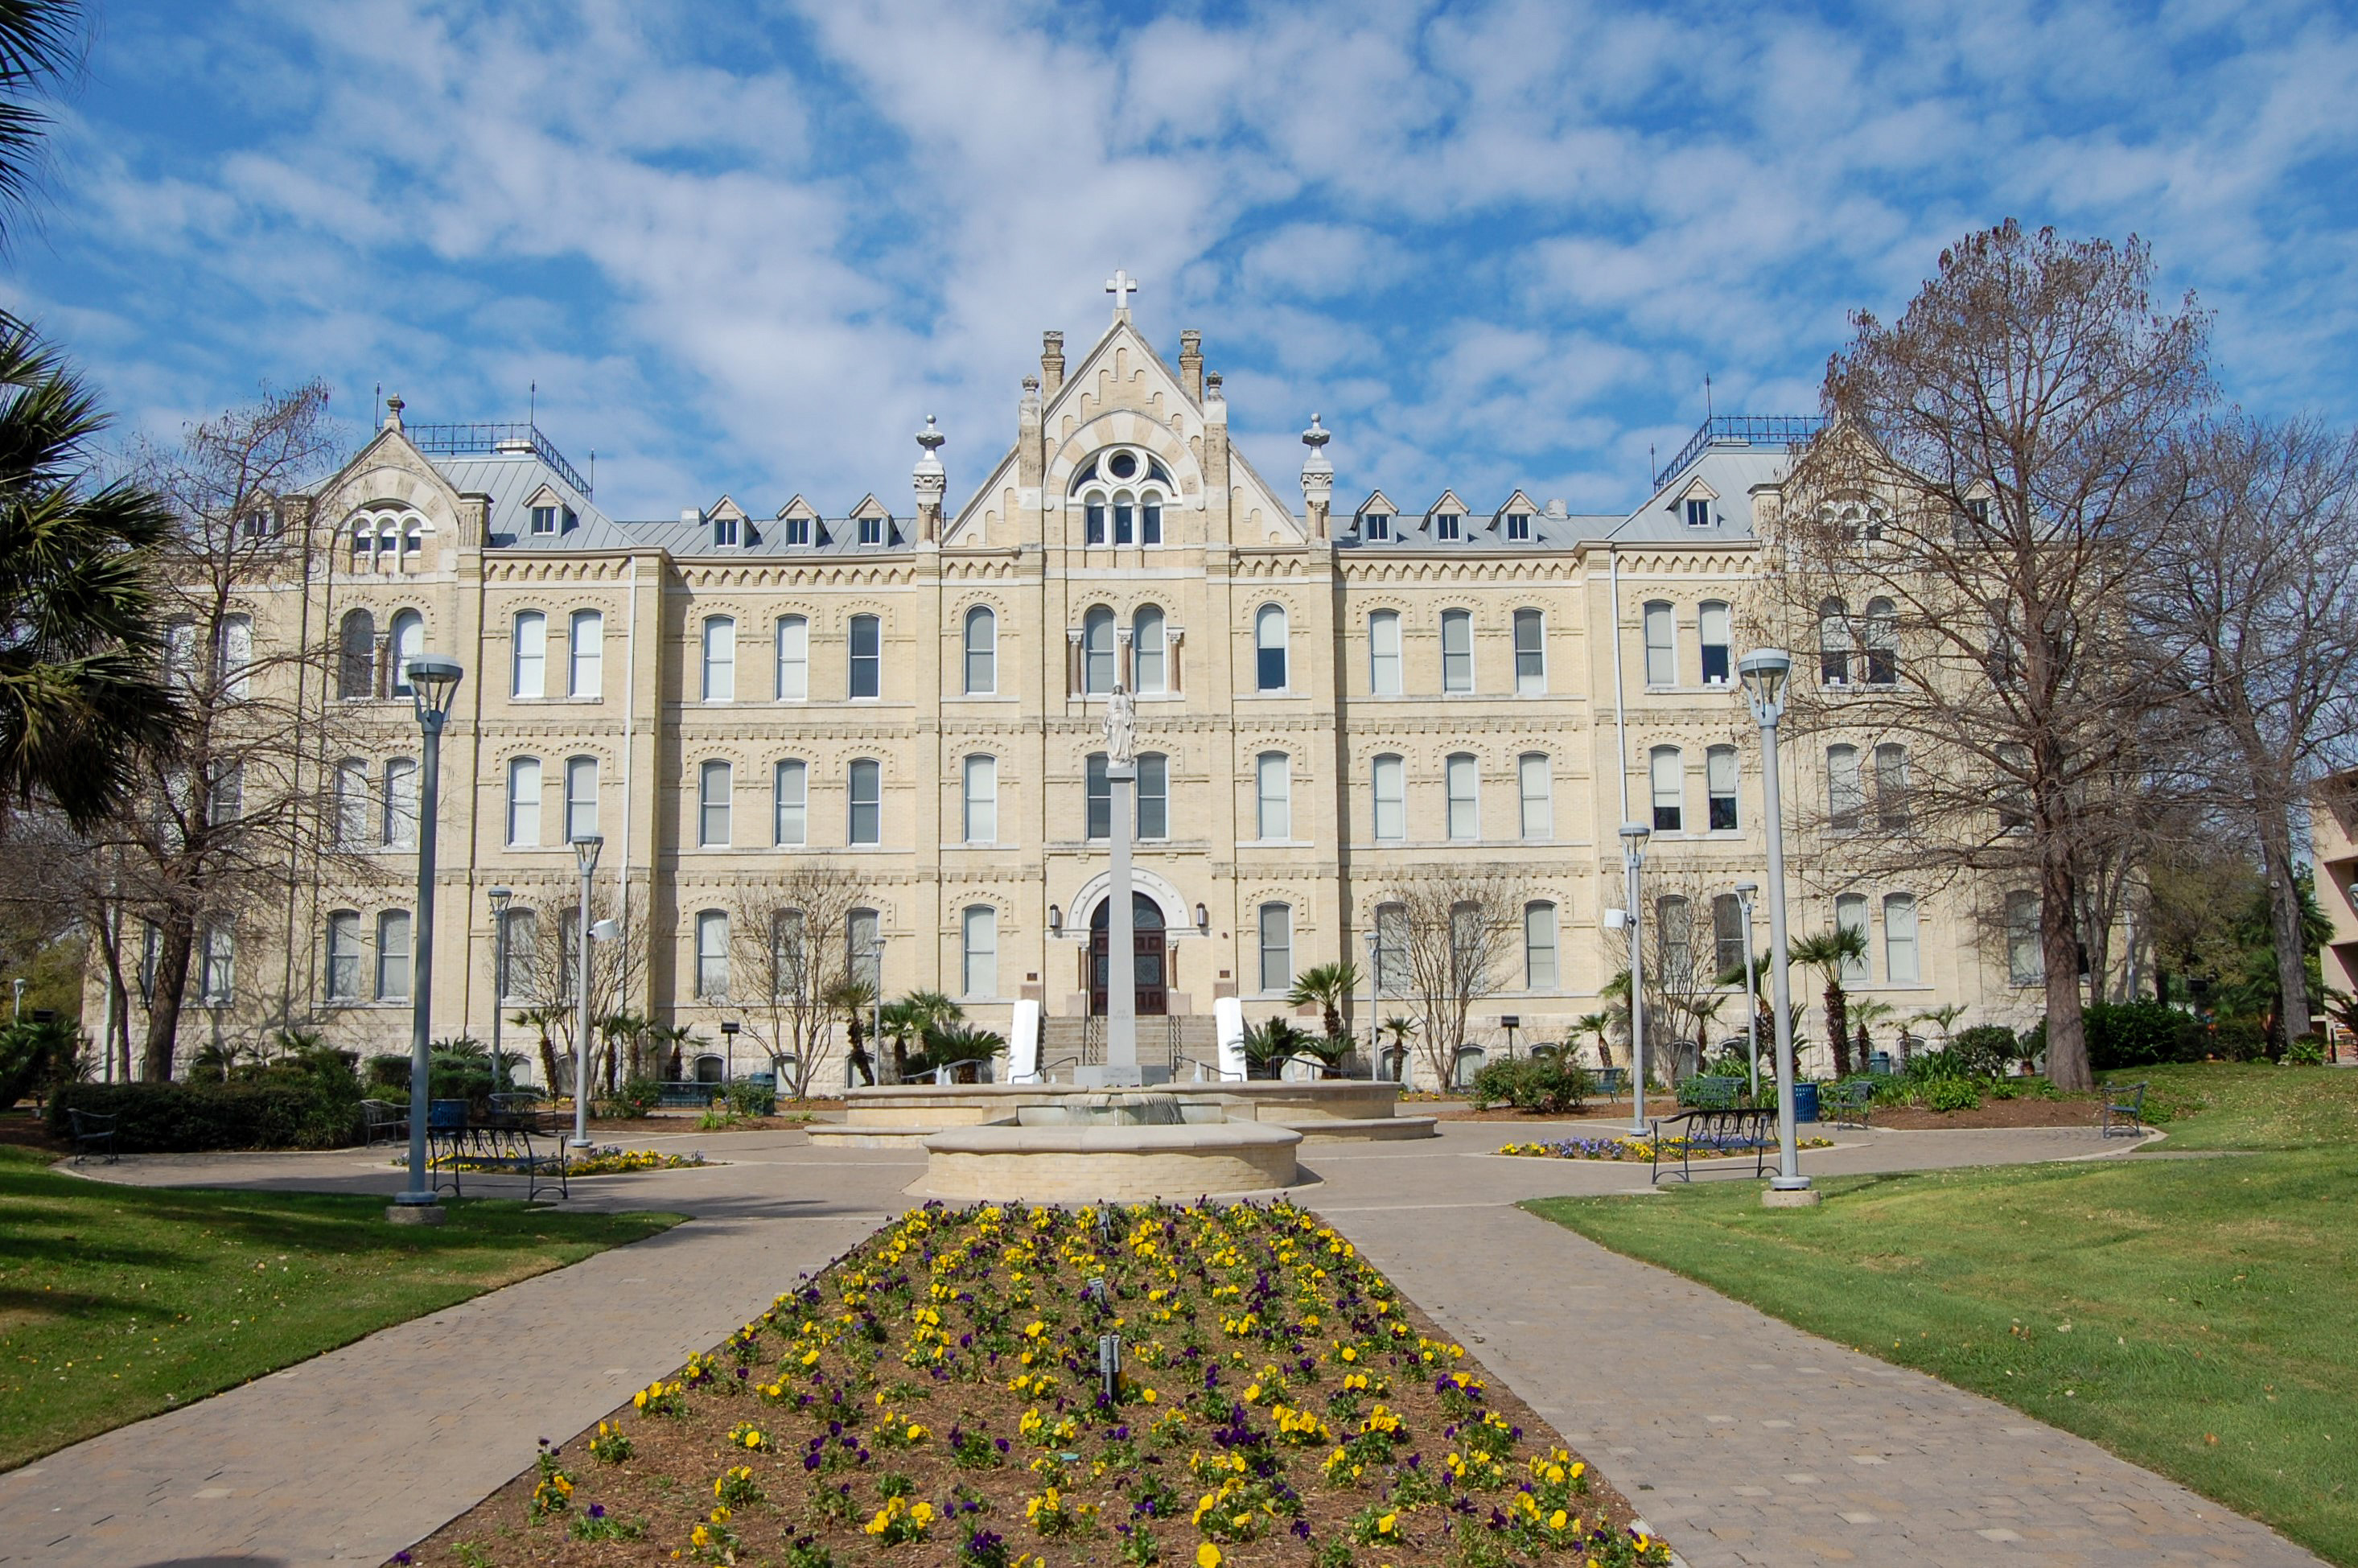 St. Mary's University – St. Louis Hall Renovation